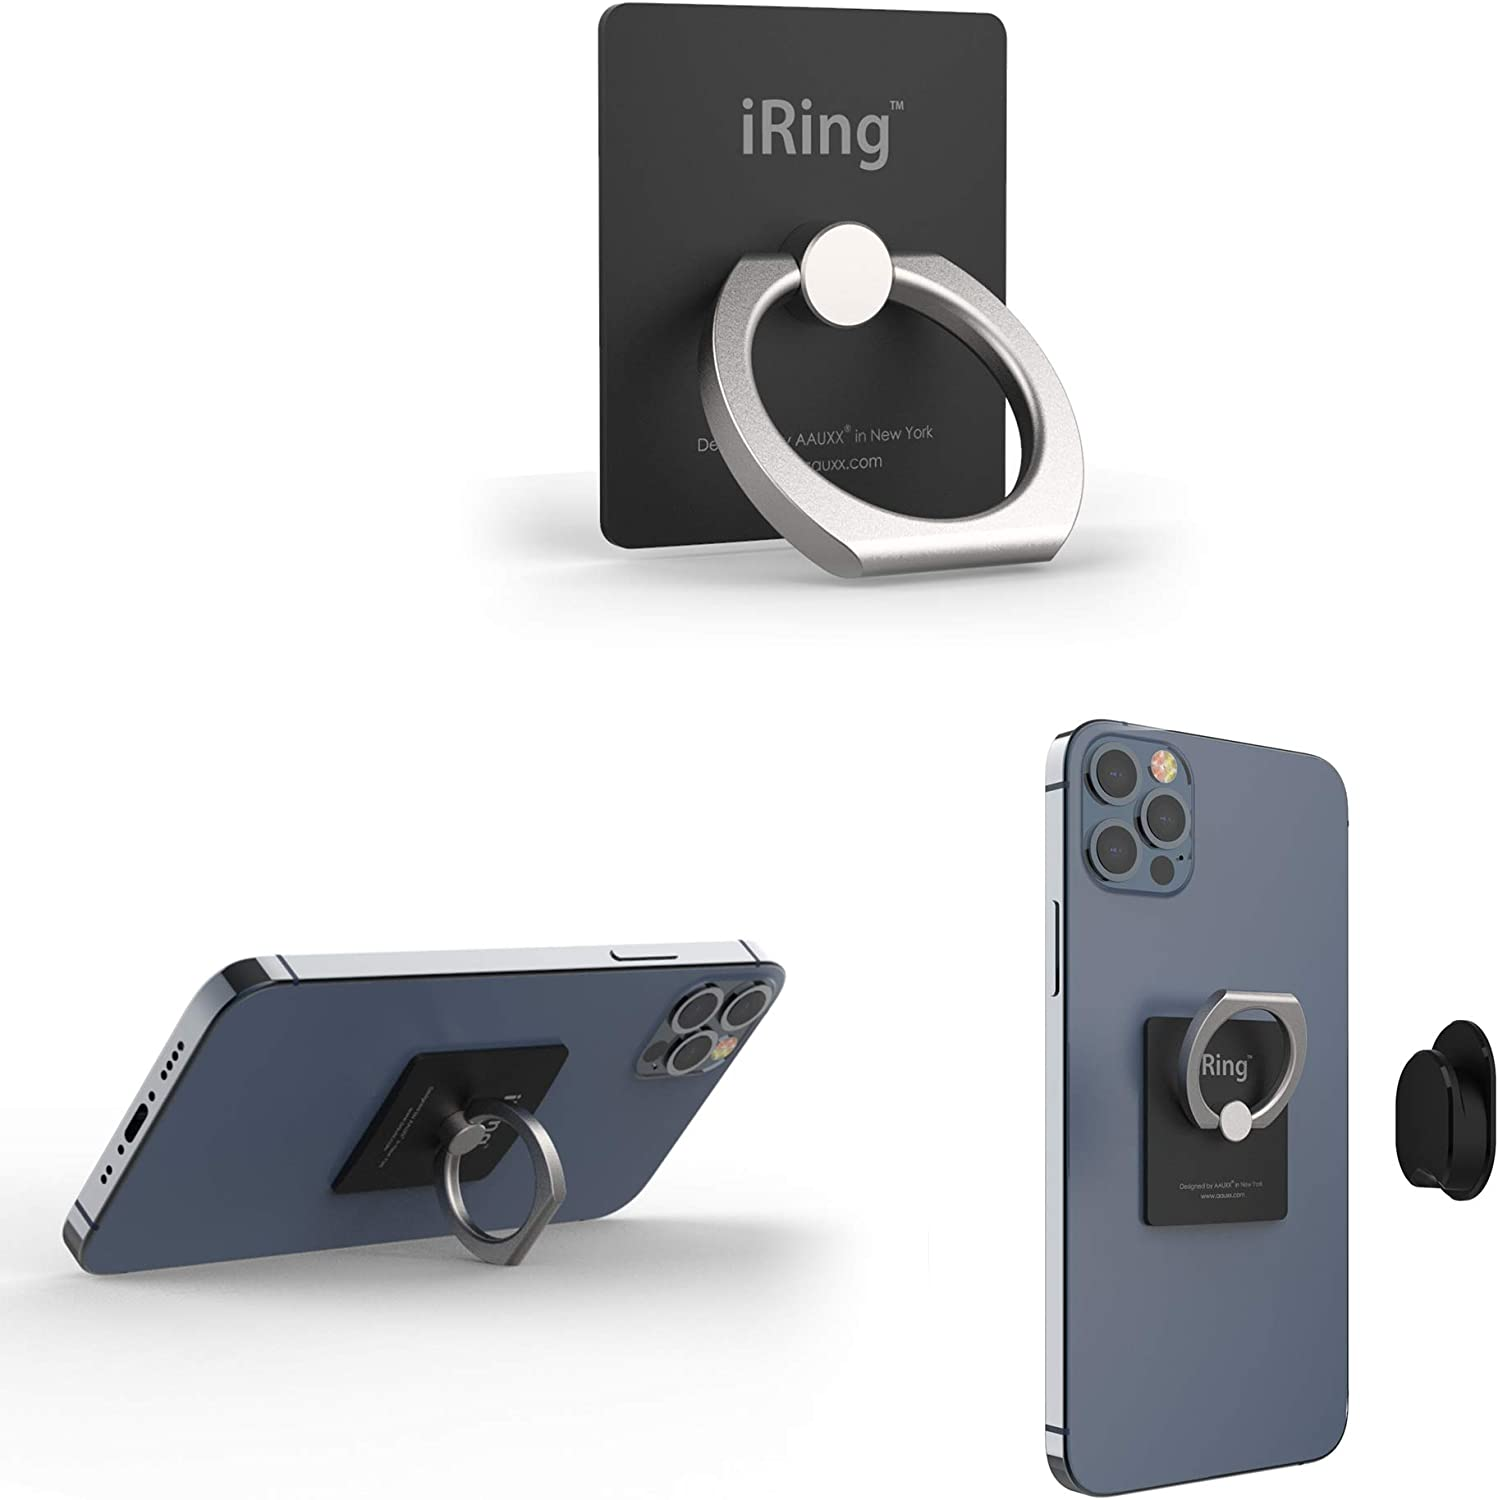 iRing Original - Include Hook Mount for Wall or Car Cradle. AAUXX Cell Phone Ring Grip Finger Holder, Mobile Stand, Kickstand, iPhone, Android, Smartphones, Tablets.(Matt Black)